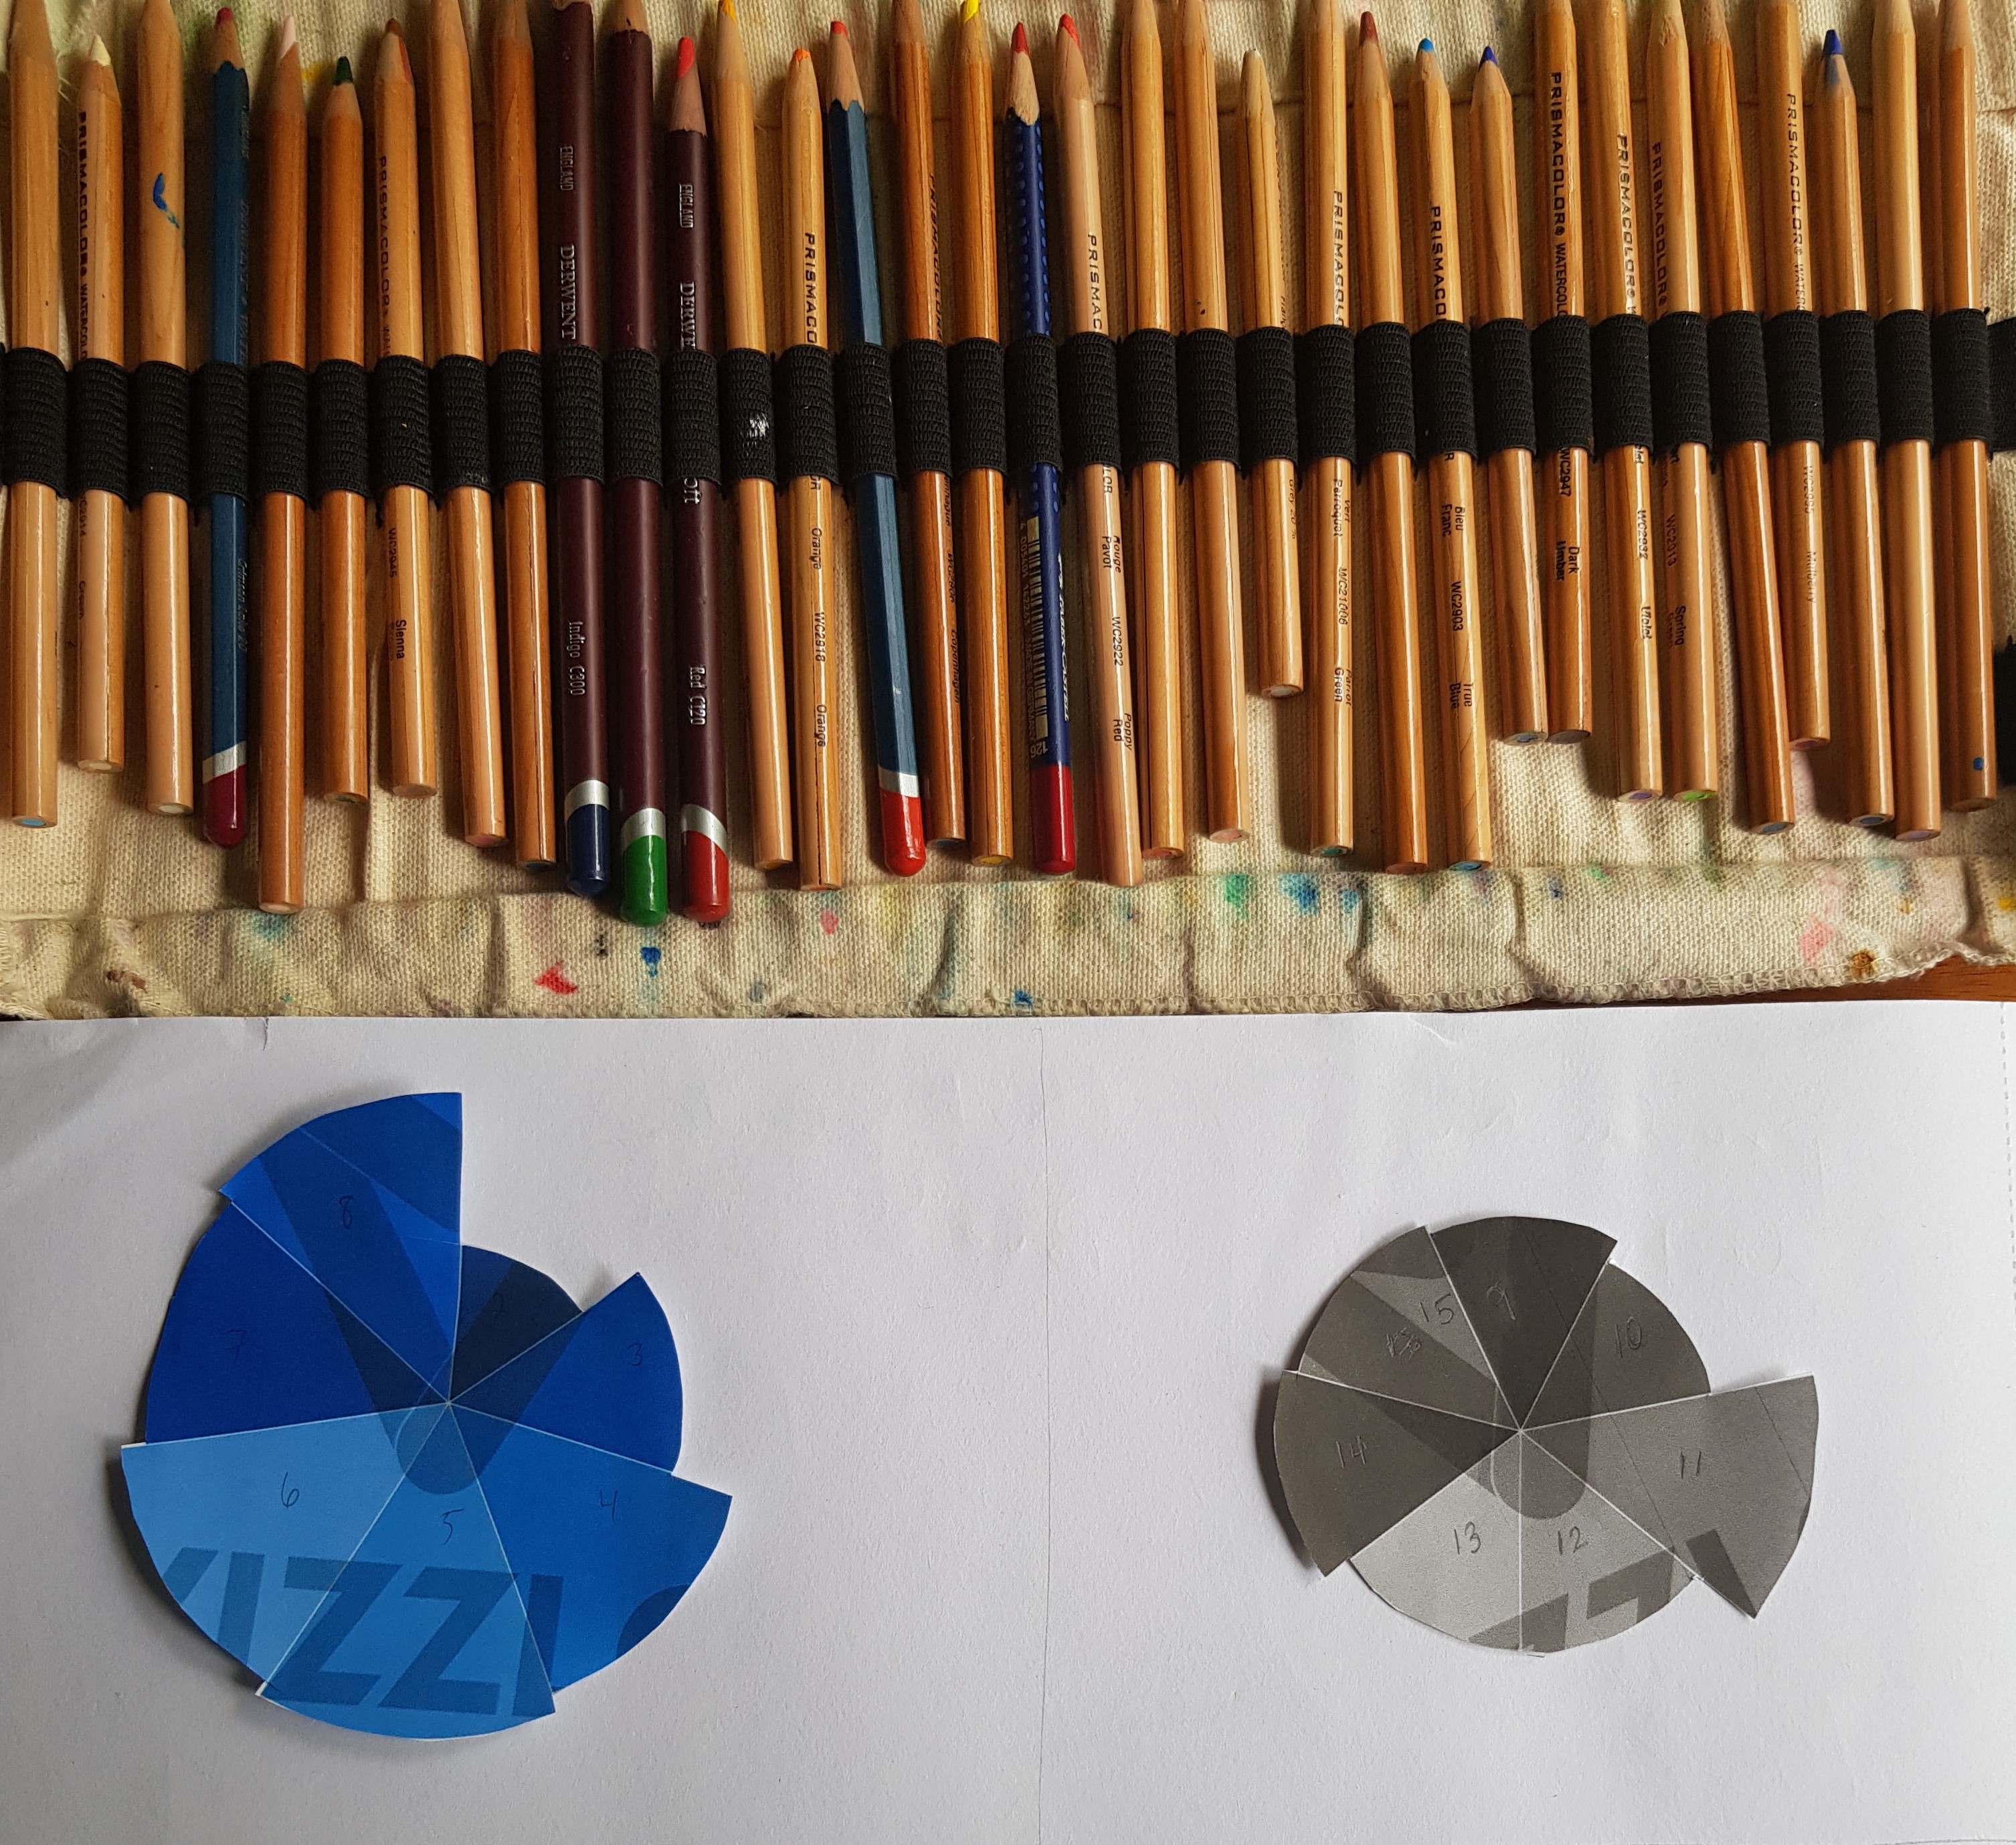 Color pencils, neatly lined up, with rose charts made of folded paper